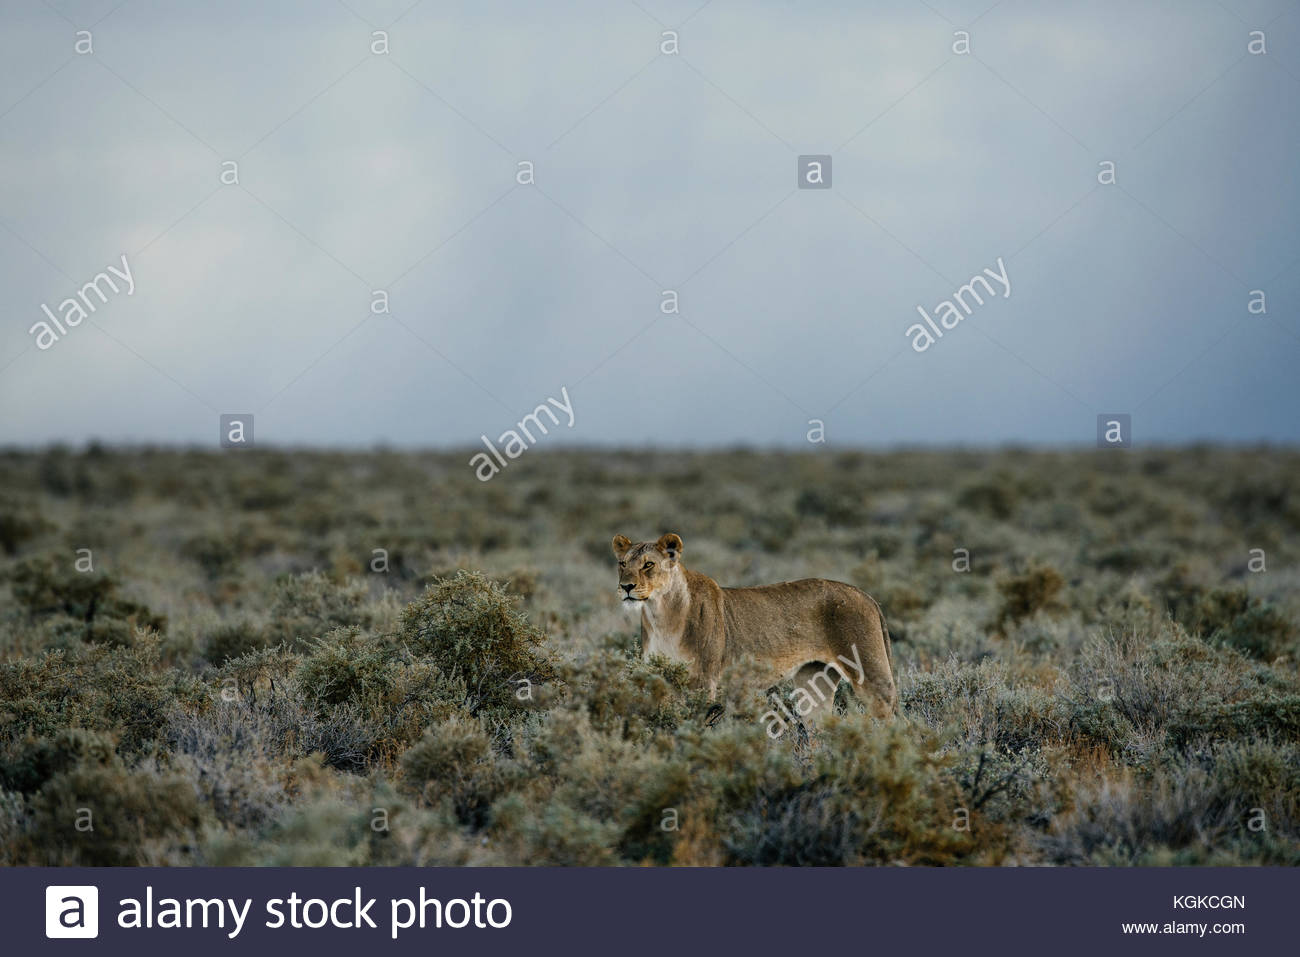 An alert lioness, Panthera leo, walking in the dry bushes. - Stock Image